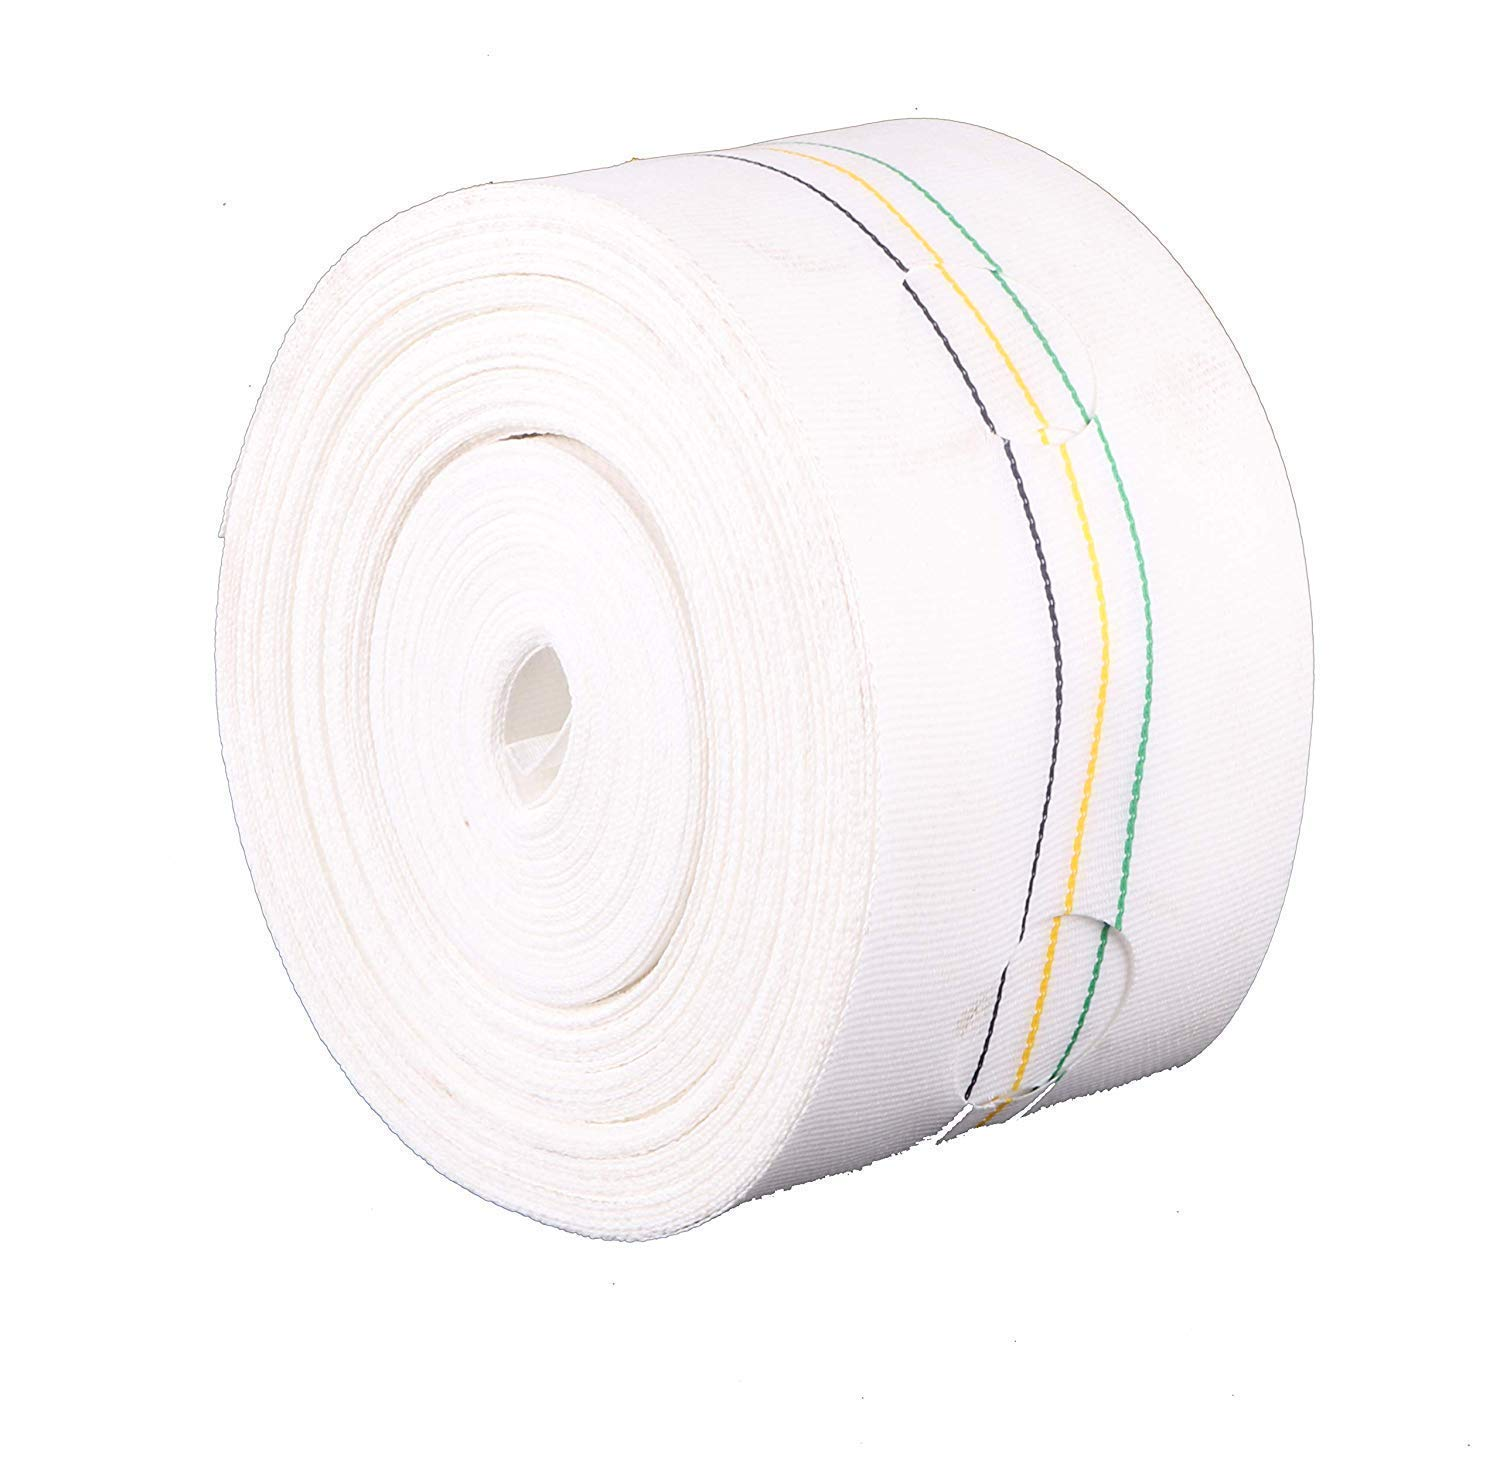 Buy Soni Homedecor White Fabric Heavy Curtain Tape For Rings With Eyelet Hole For 4 Inch Hook For 20 Curtains 25m Online At Low Prices In India Amazon In